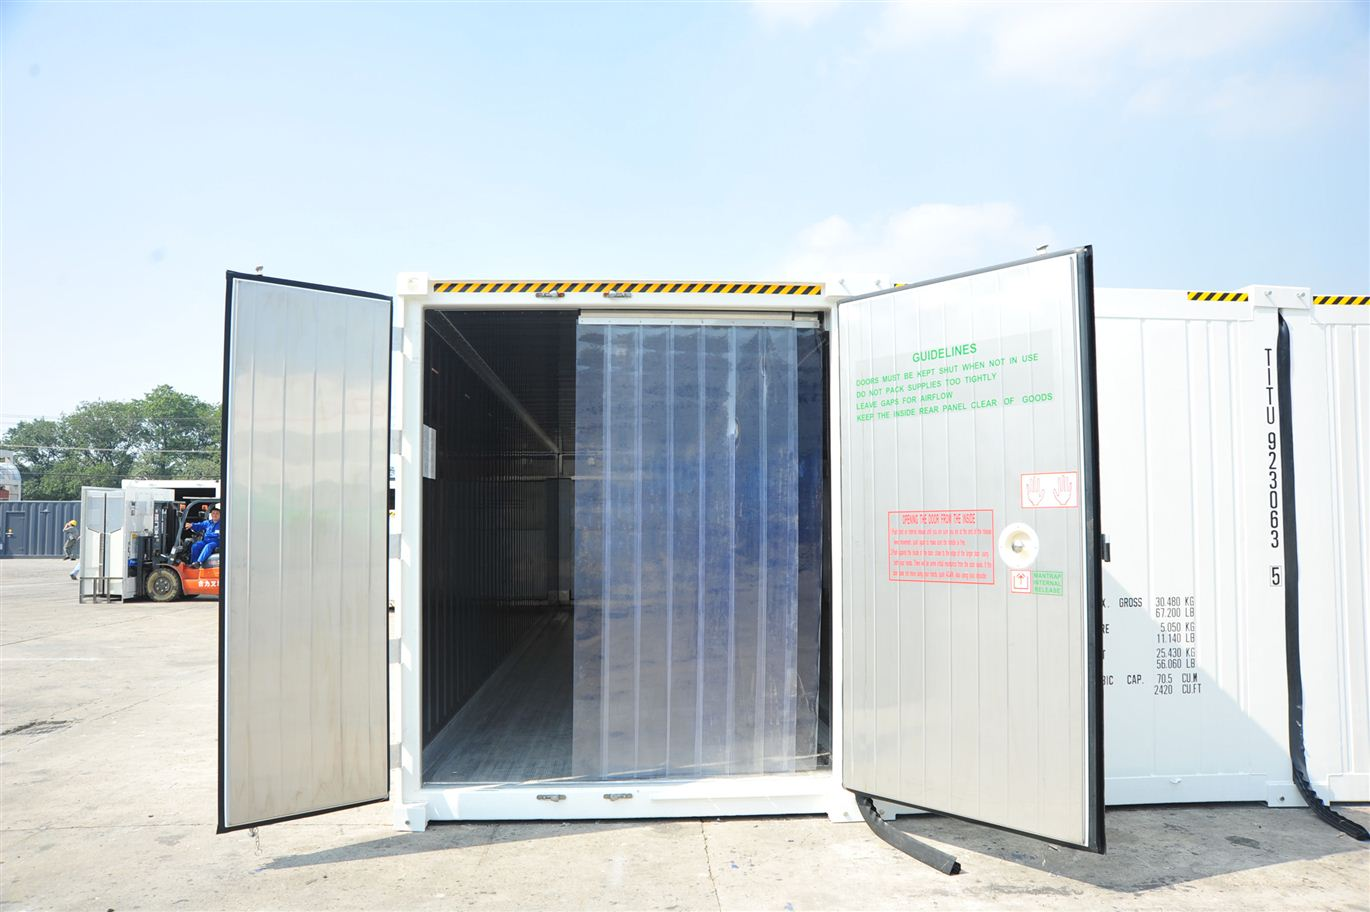 Location containers frigorifiques | Chambres froides mobiles ...